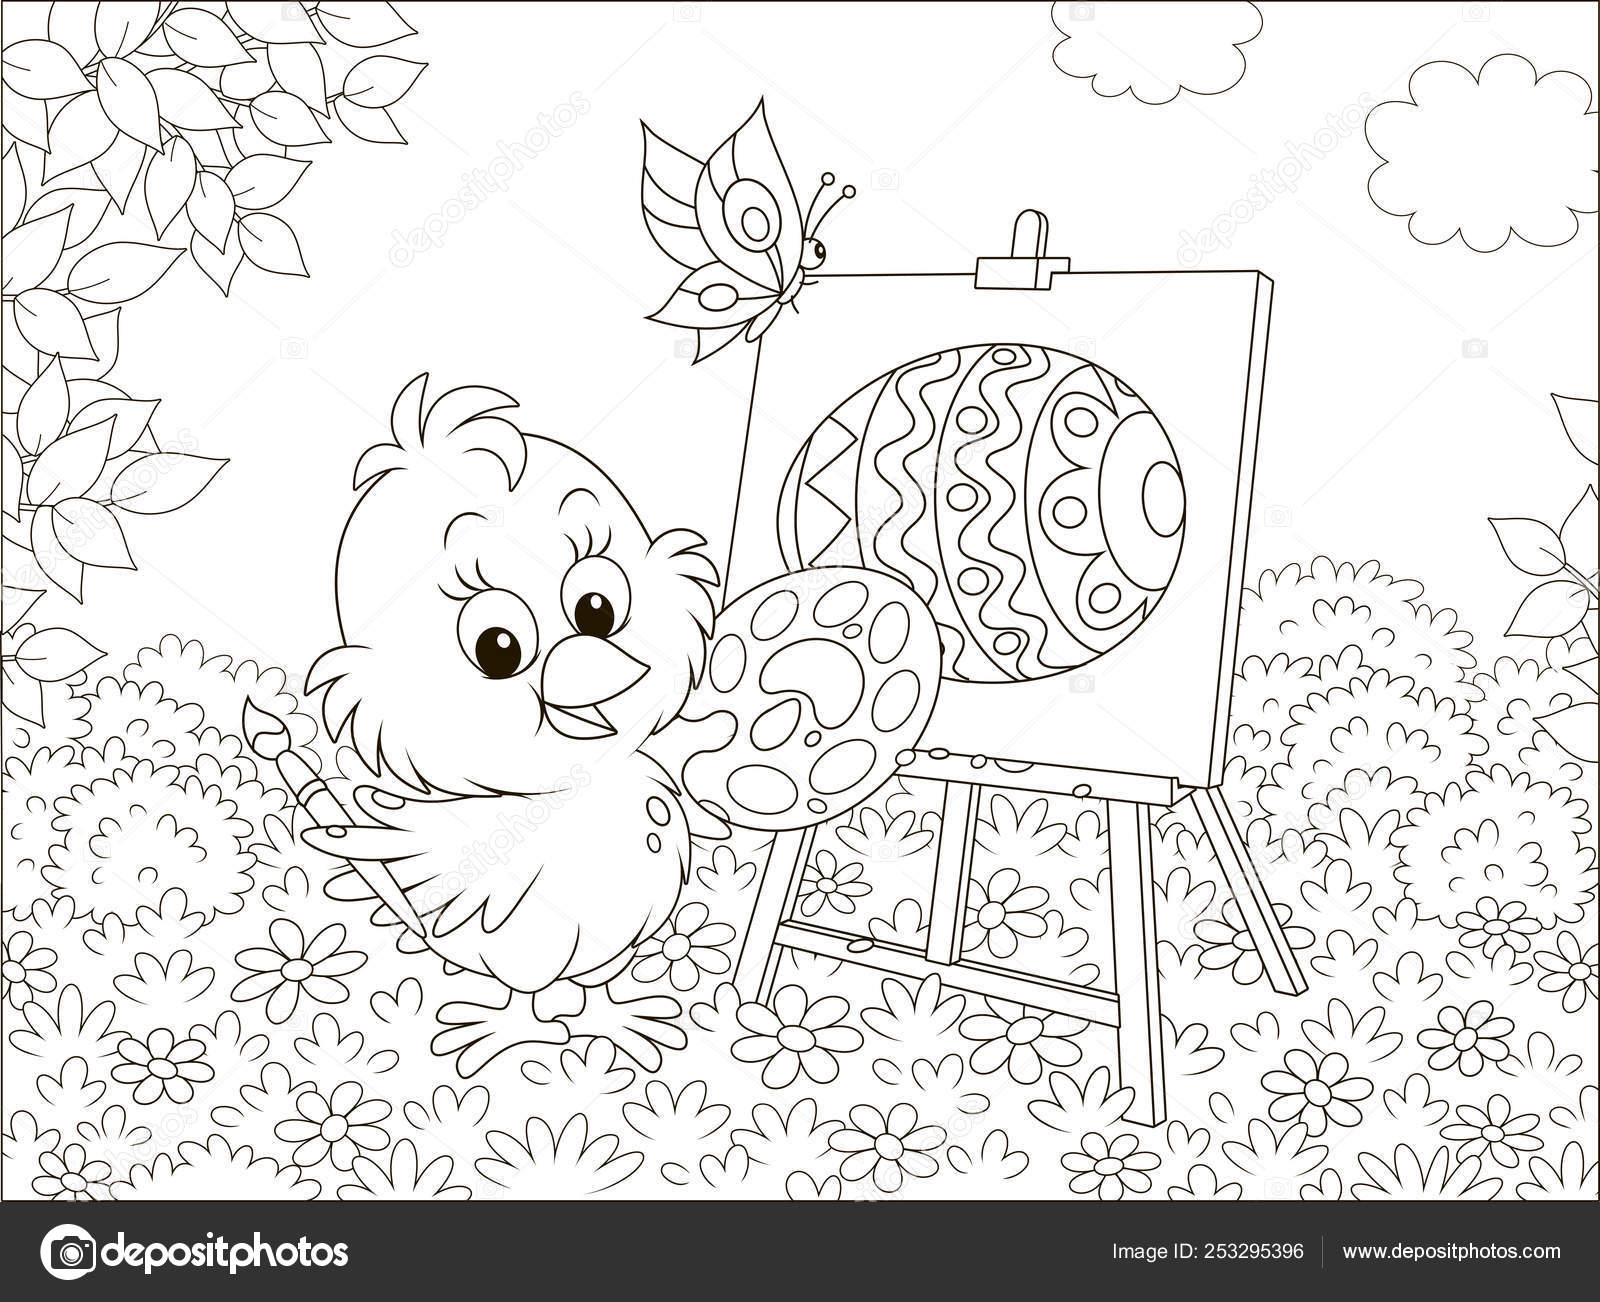 Little Chick Drawing Decorated Easter Egg Flowers Grass Lawn ...